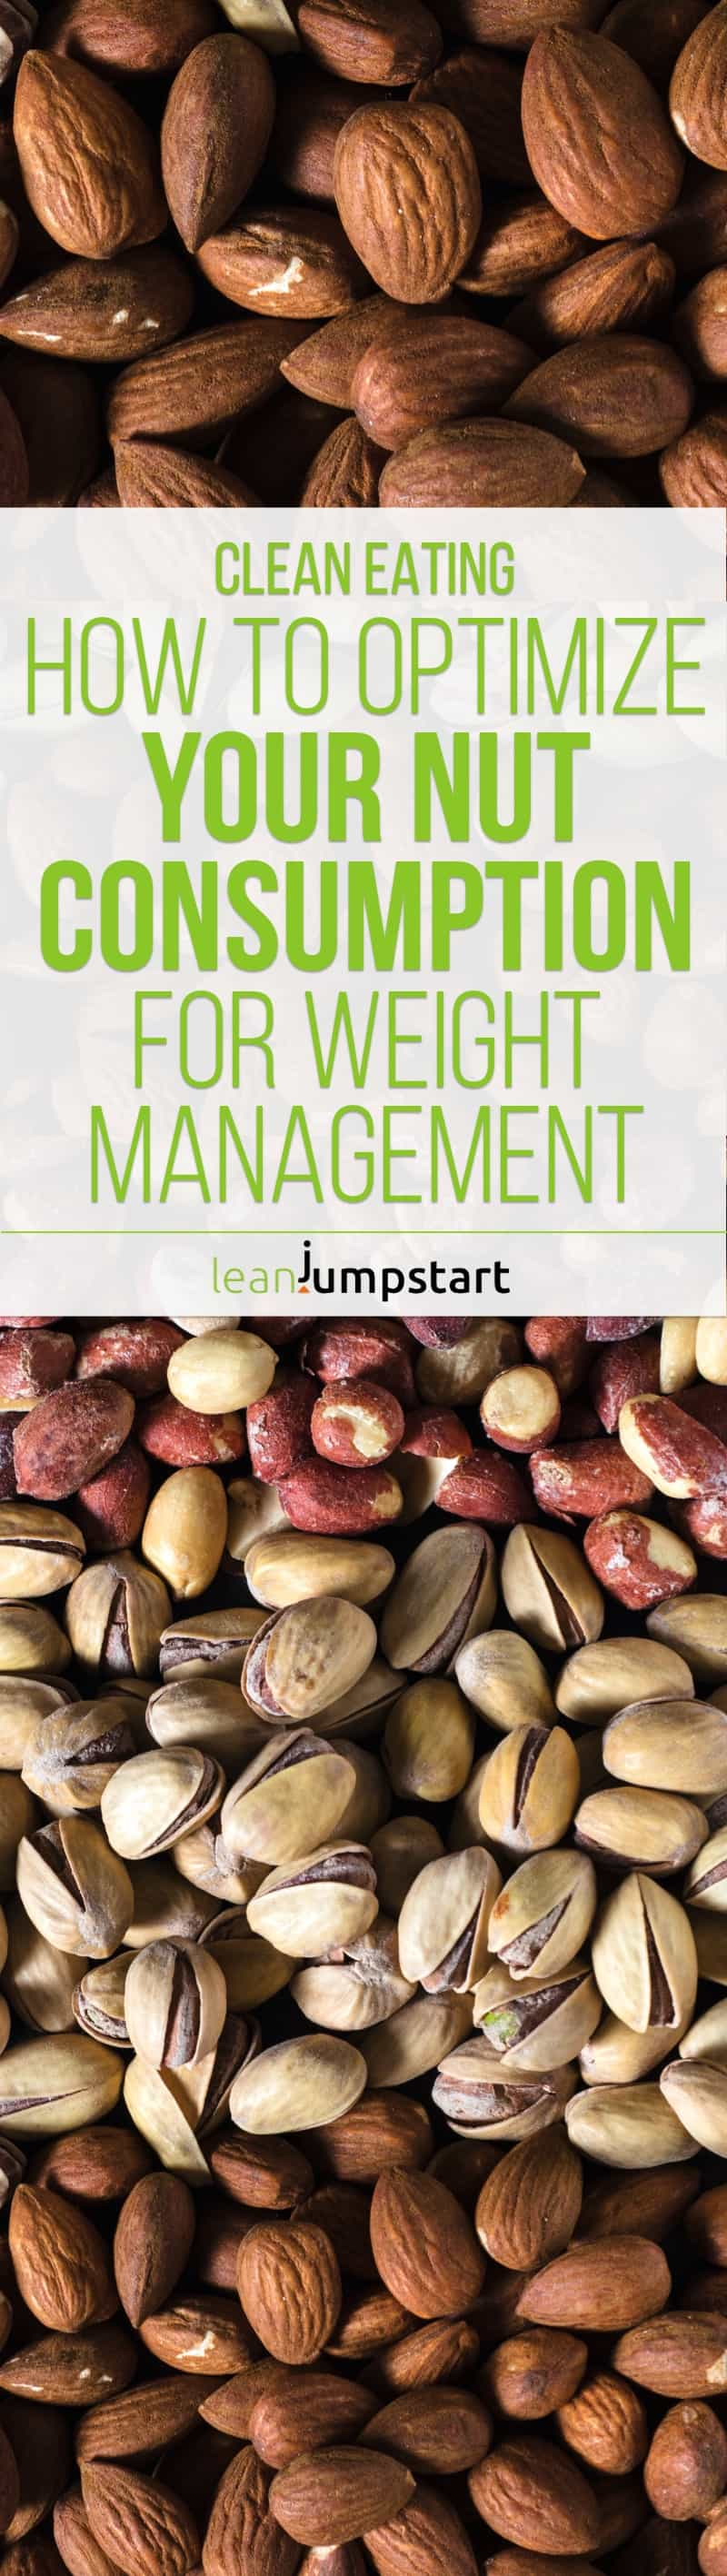 How to optimize nut consumption in your clean eating kitchen for best weight management. Click through!